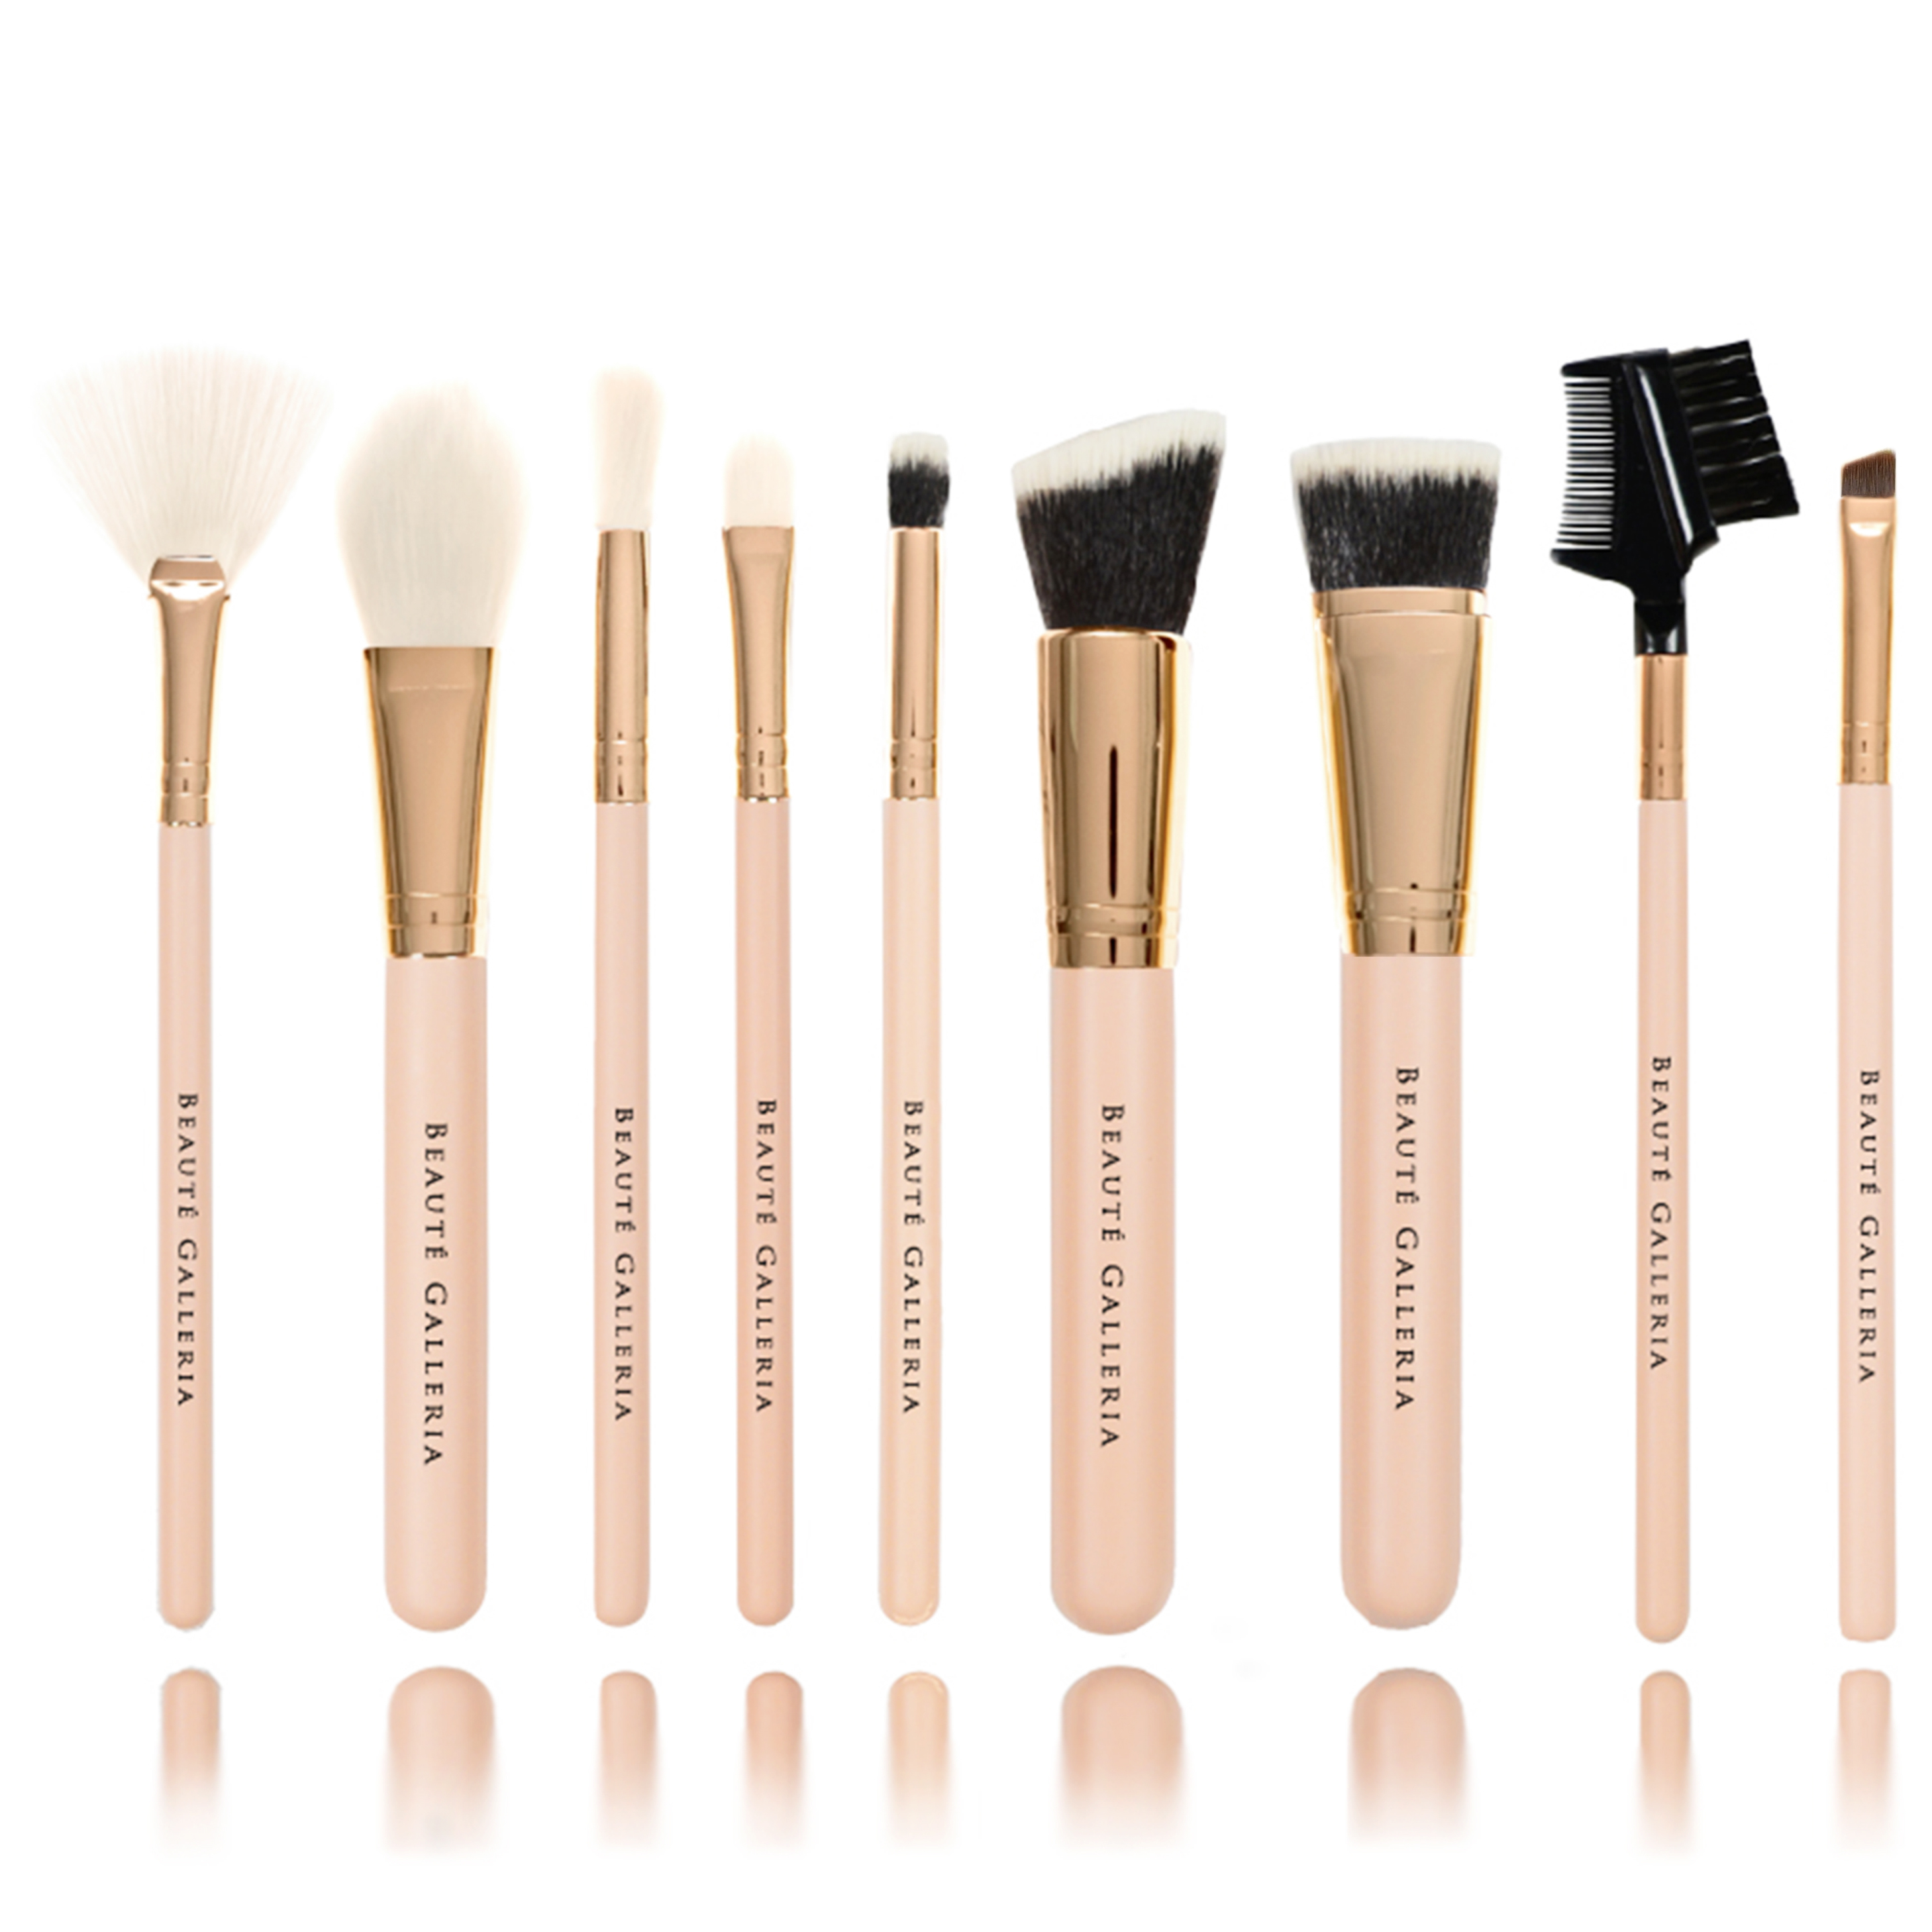 Beaute Galleria - 9pcs Synthetic Cruelty-Free Vegan Makeup Brush Set (Foundation, Contour, Blush, Fan, Concealers, Eyeliner, Eye-Shadows, Crease, Lash-Brow) with Case and Mirror